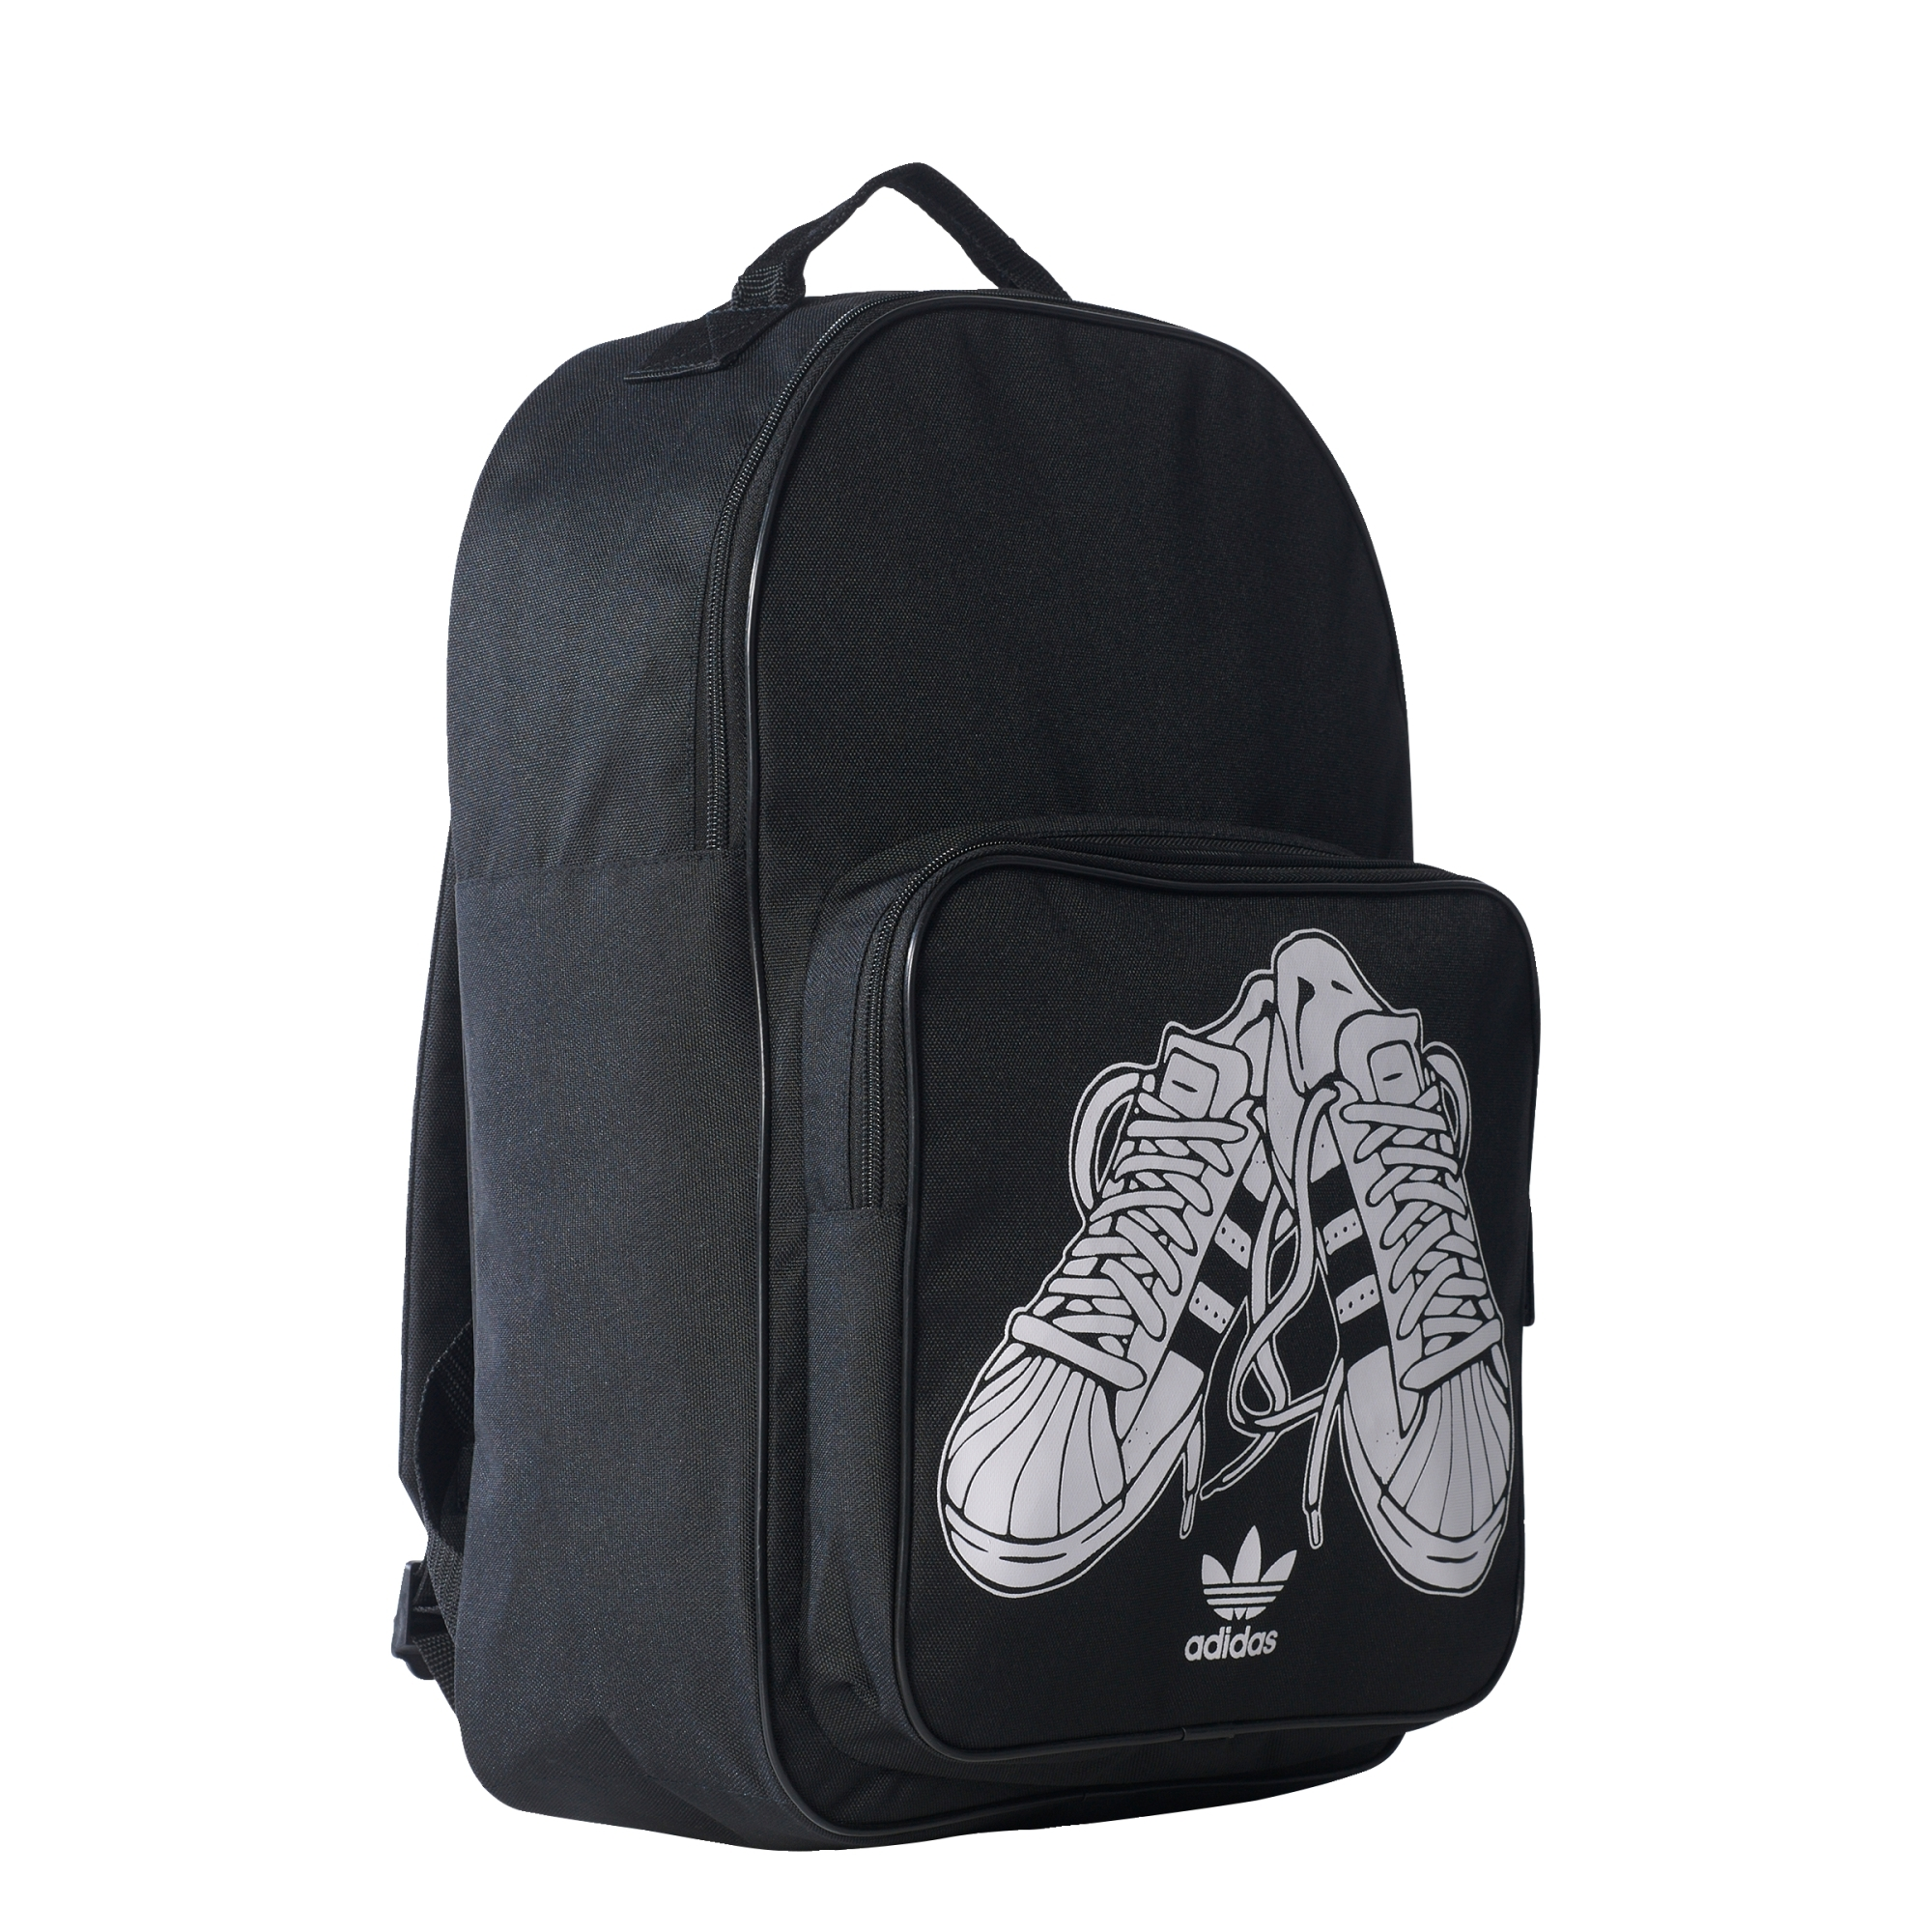 f60d8eaa2d1b Adidas Originals Sport Backpack Black White- Fenix Toulouse Handball